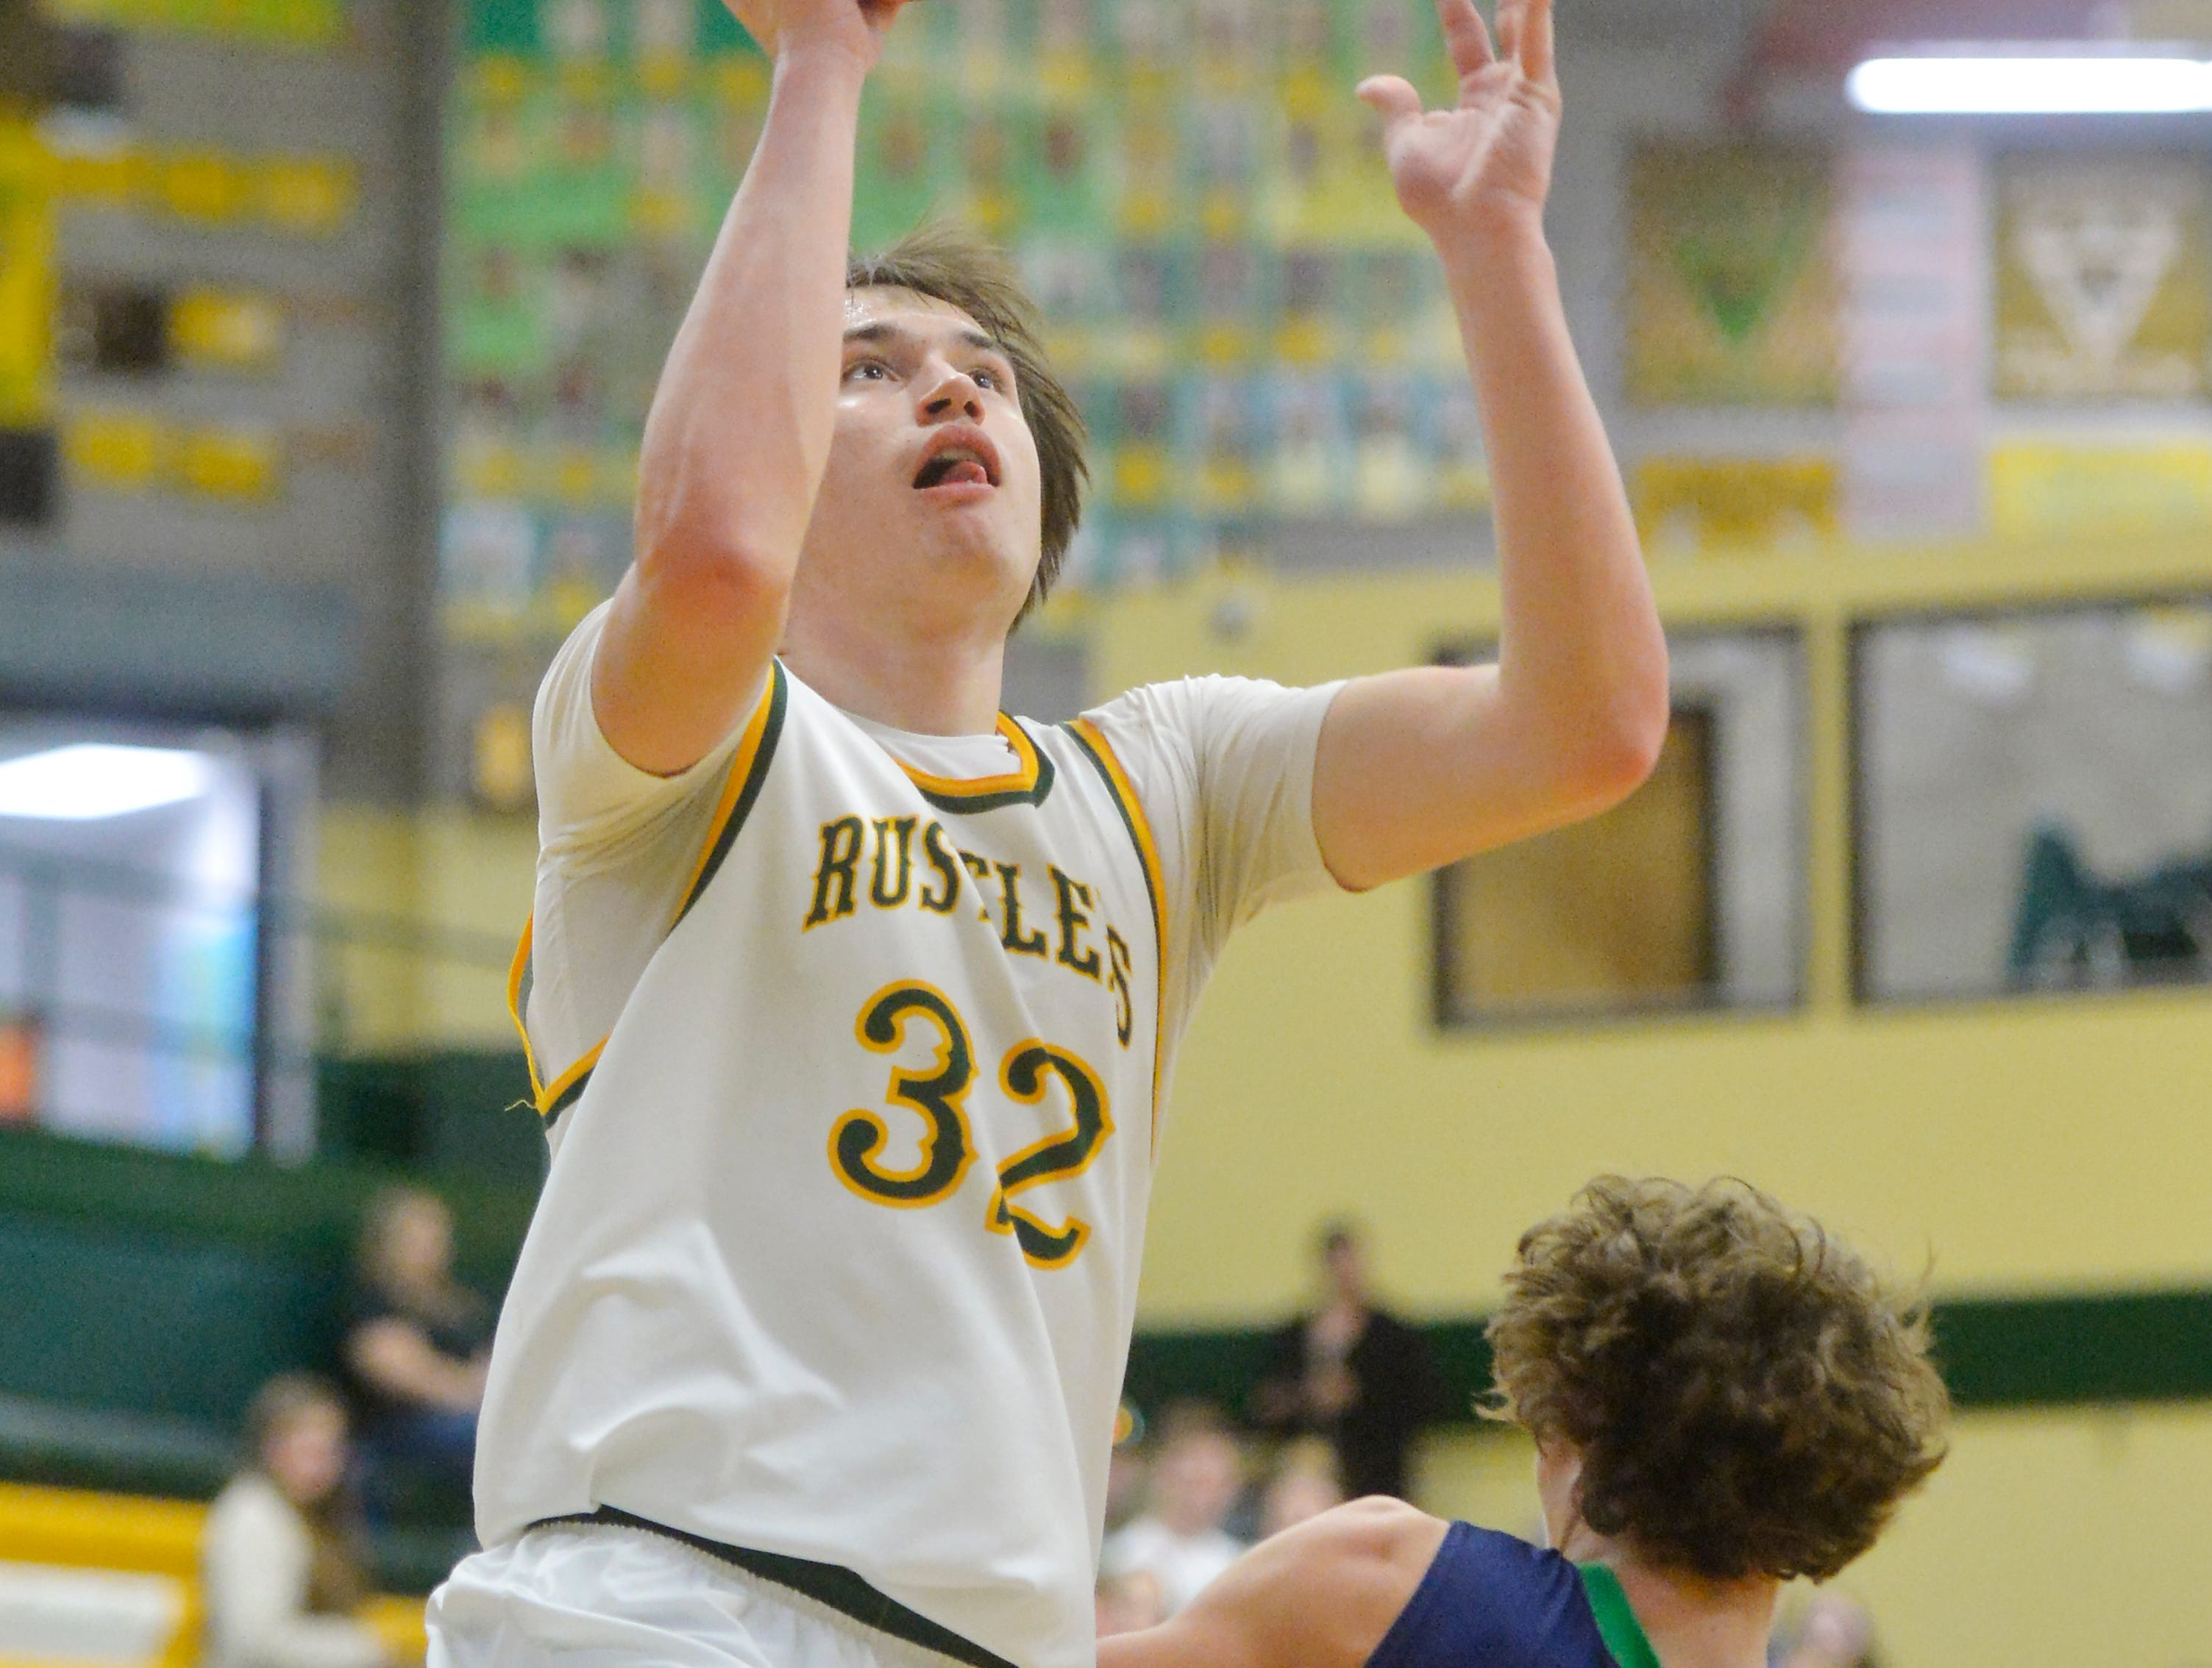 CMR's Bryce Depping goes in for a layup during Friday night's basketball game against Glacier in the CMR Fieldhouse.